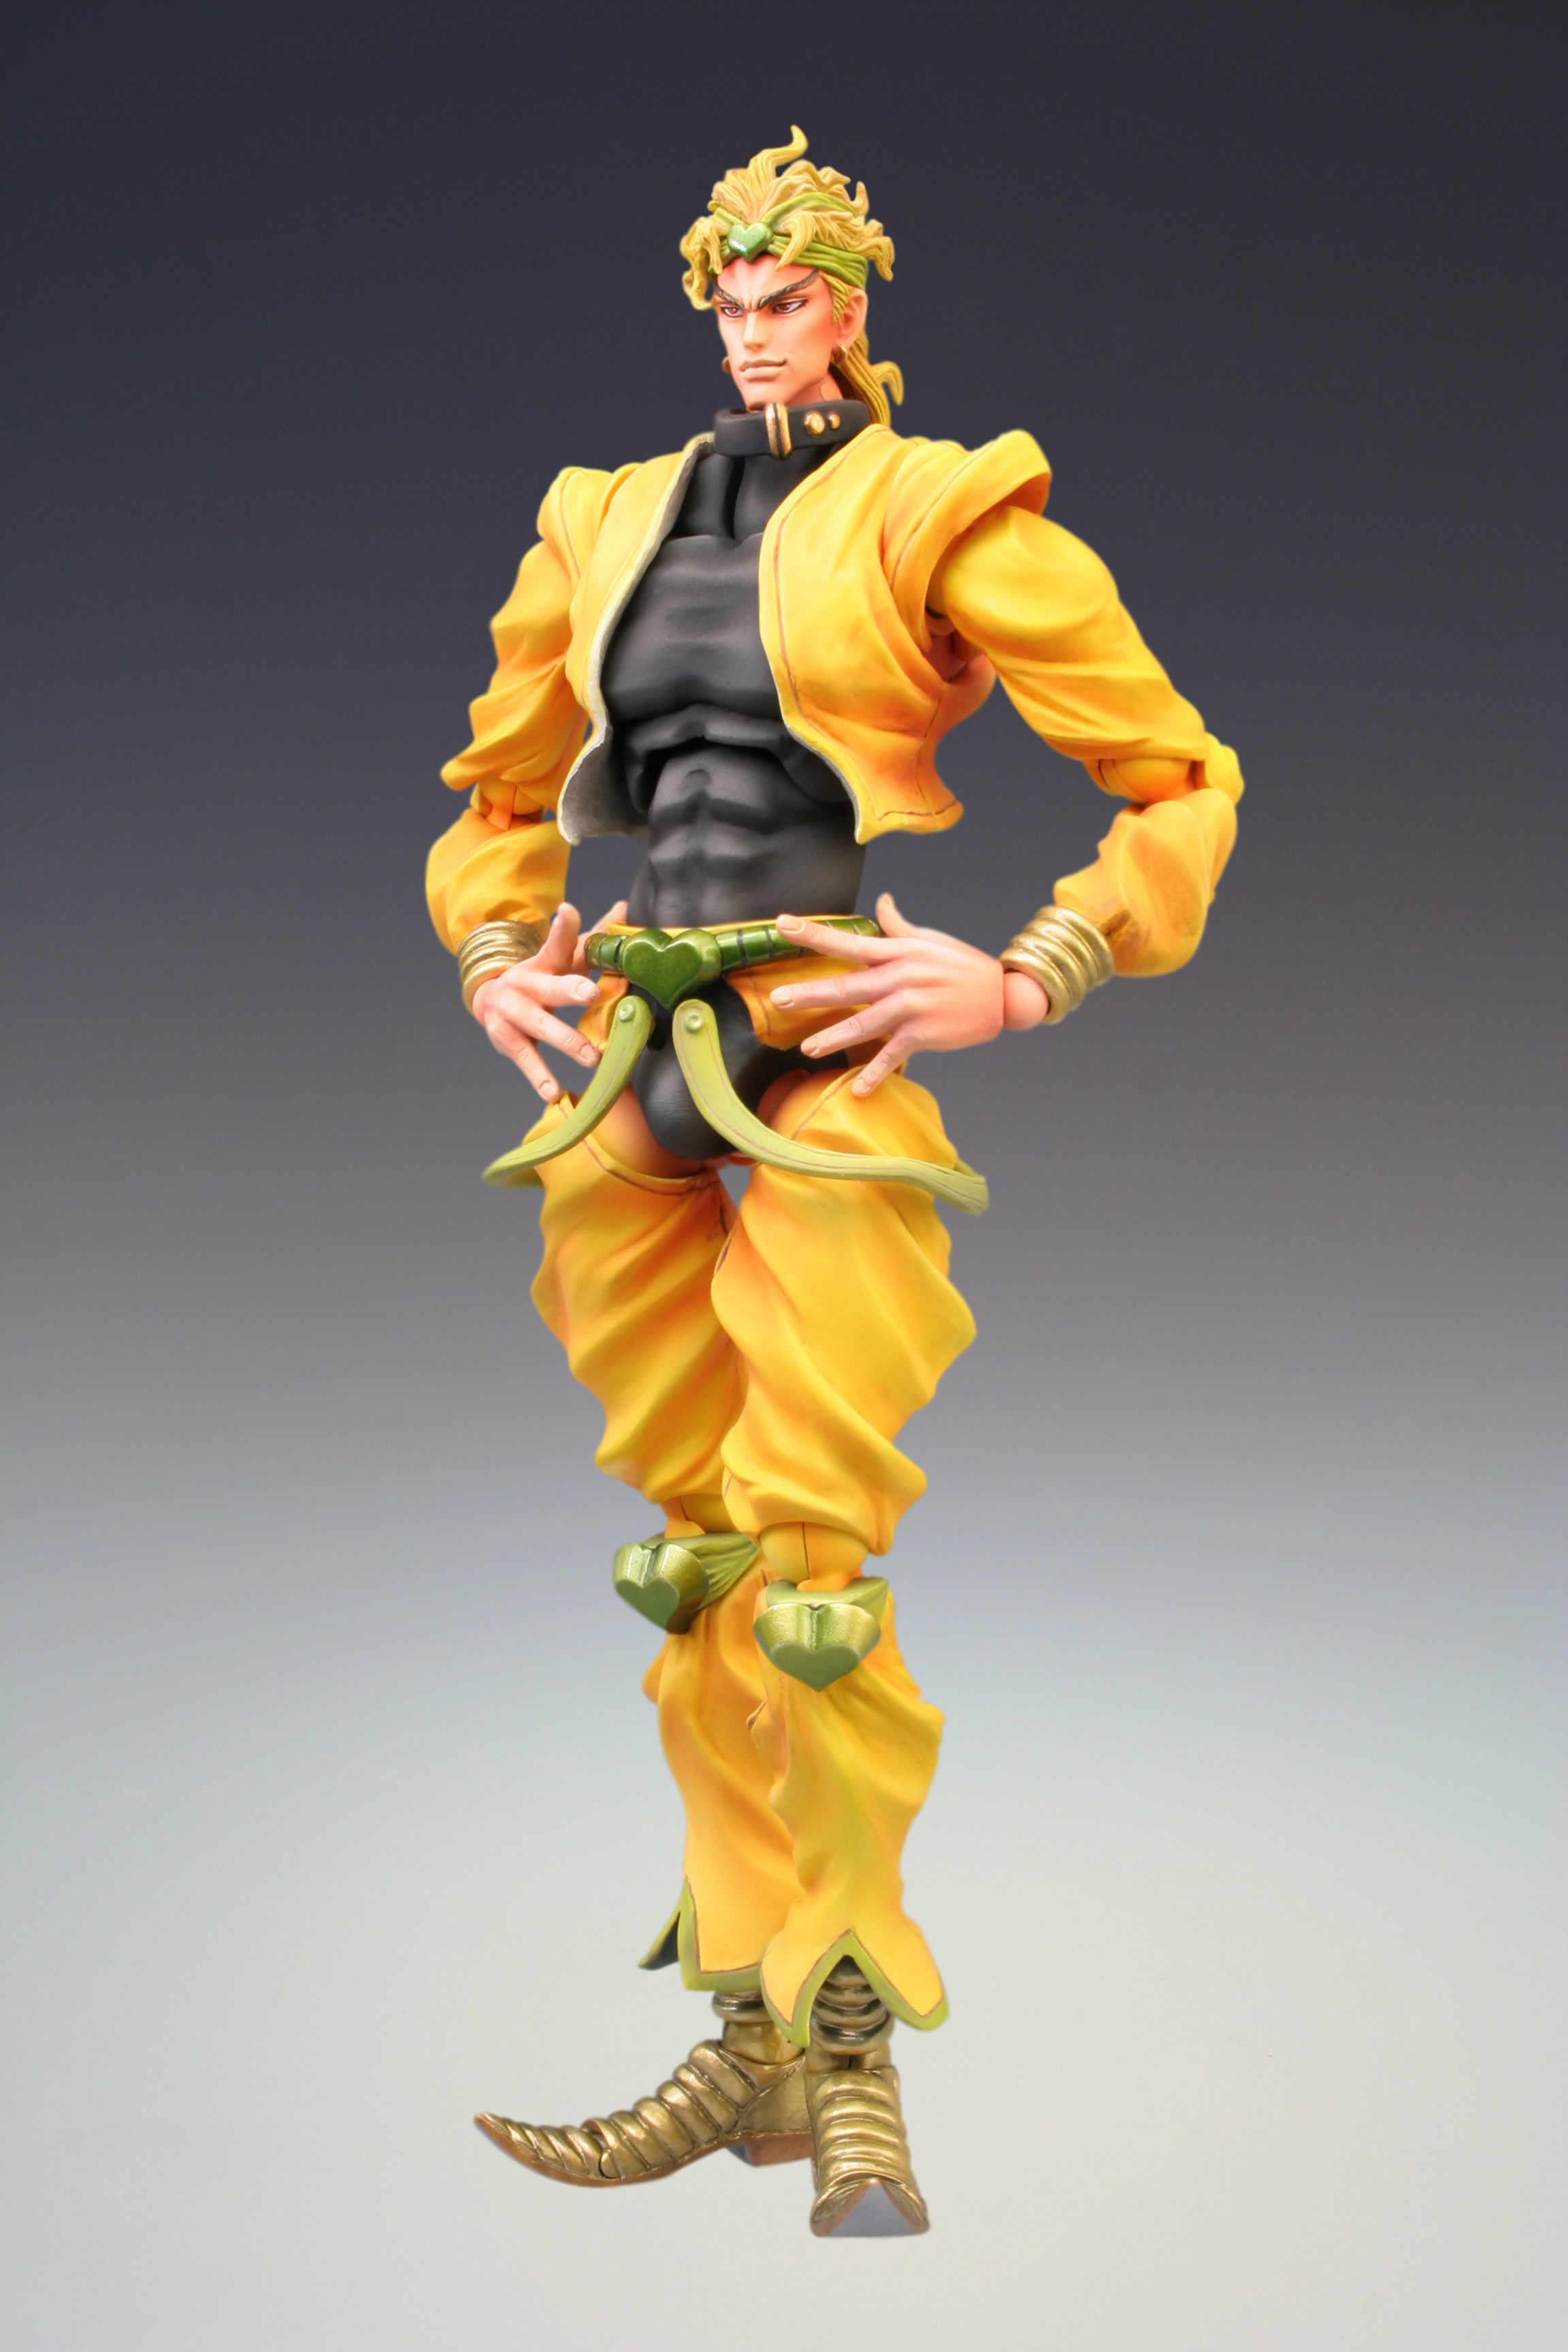 Super Action Statue Dio Brando Hirohiko Araki Color